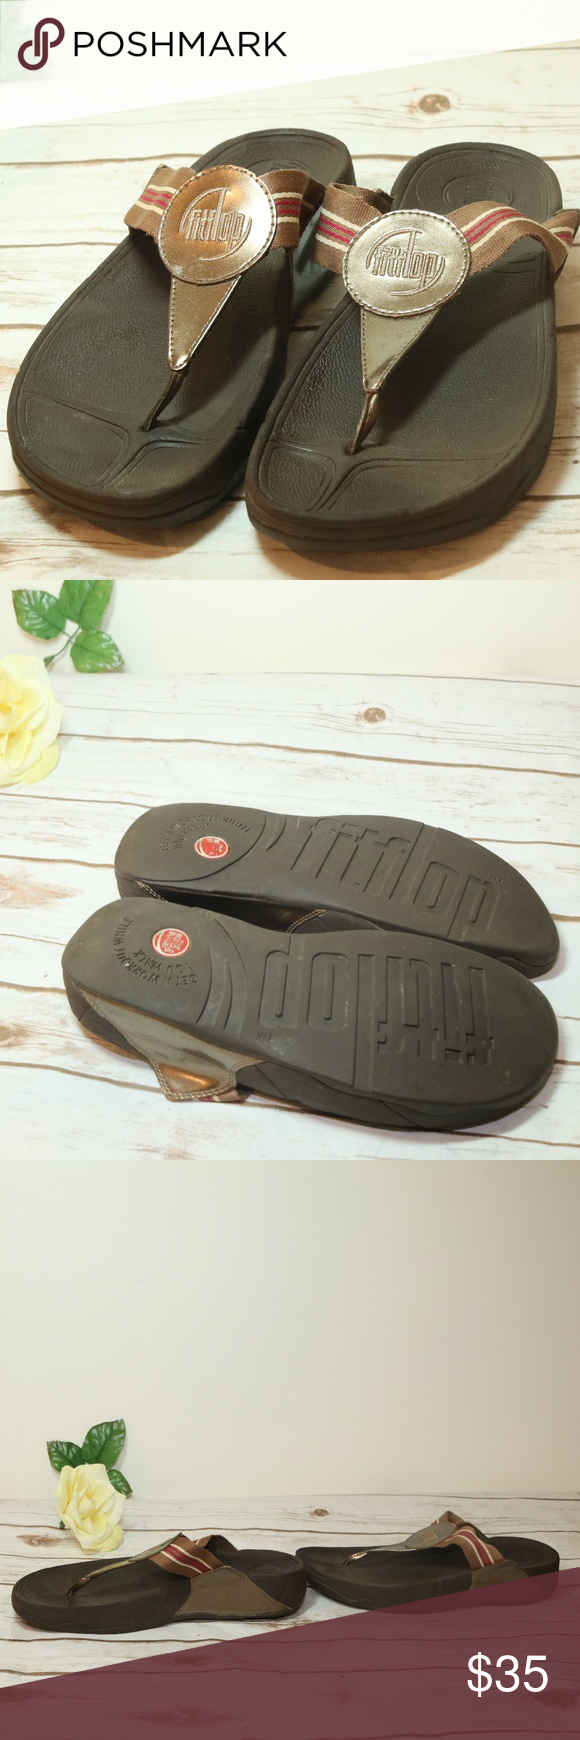 fa1273d1ab7 Fitflop slippers gold brown thong sandals fitflop slippers gold brown thong  sandals png 580x1740 Shoes fitflop